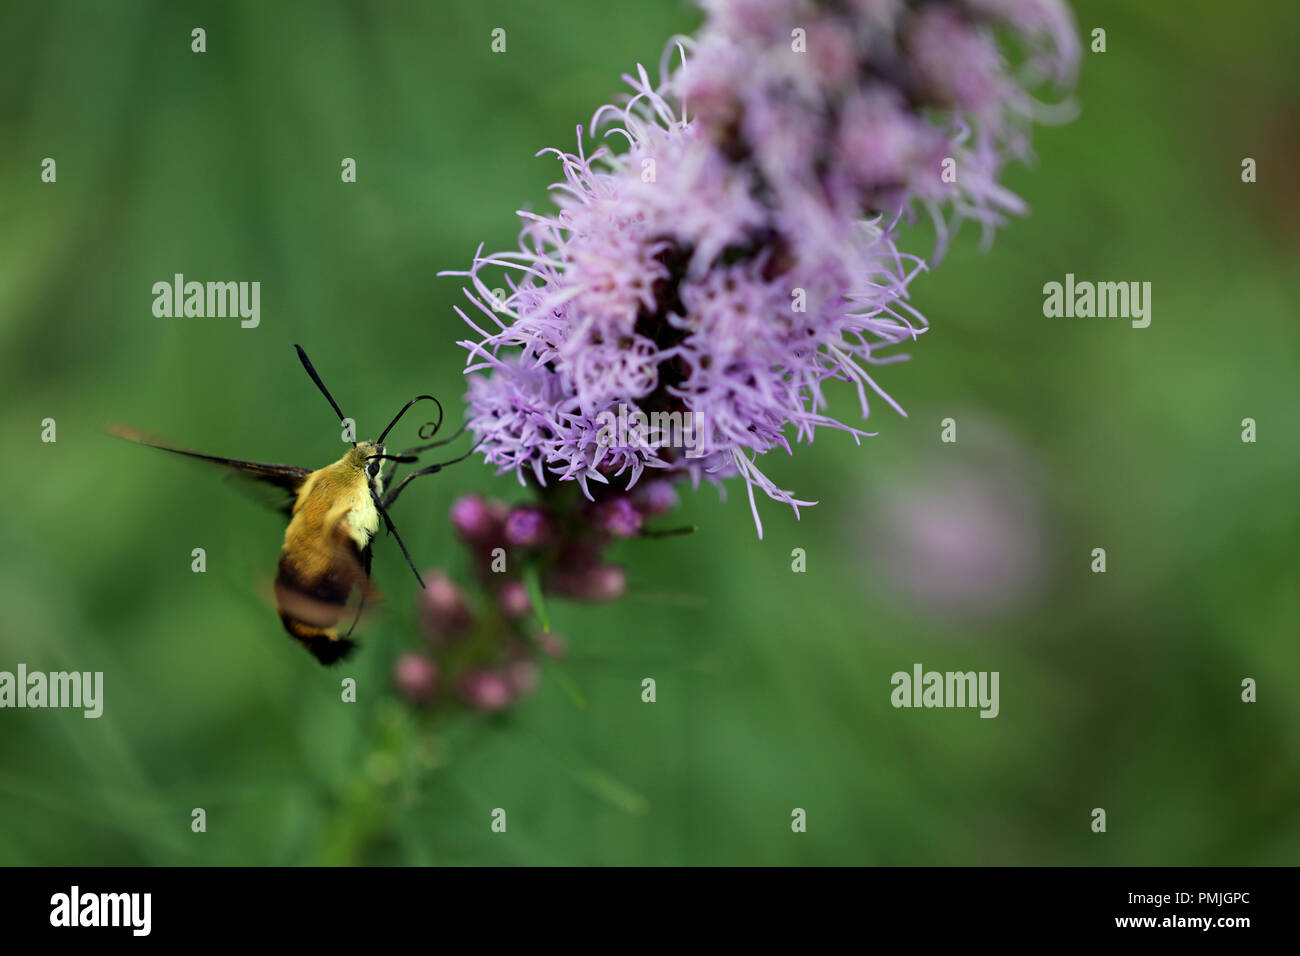 A hummingbird moth (Hemaris diffinis), also known as a Snowberry Clearwing, feeding on blazing star (Liatris spicata) in a New England garden Stock Photo